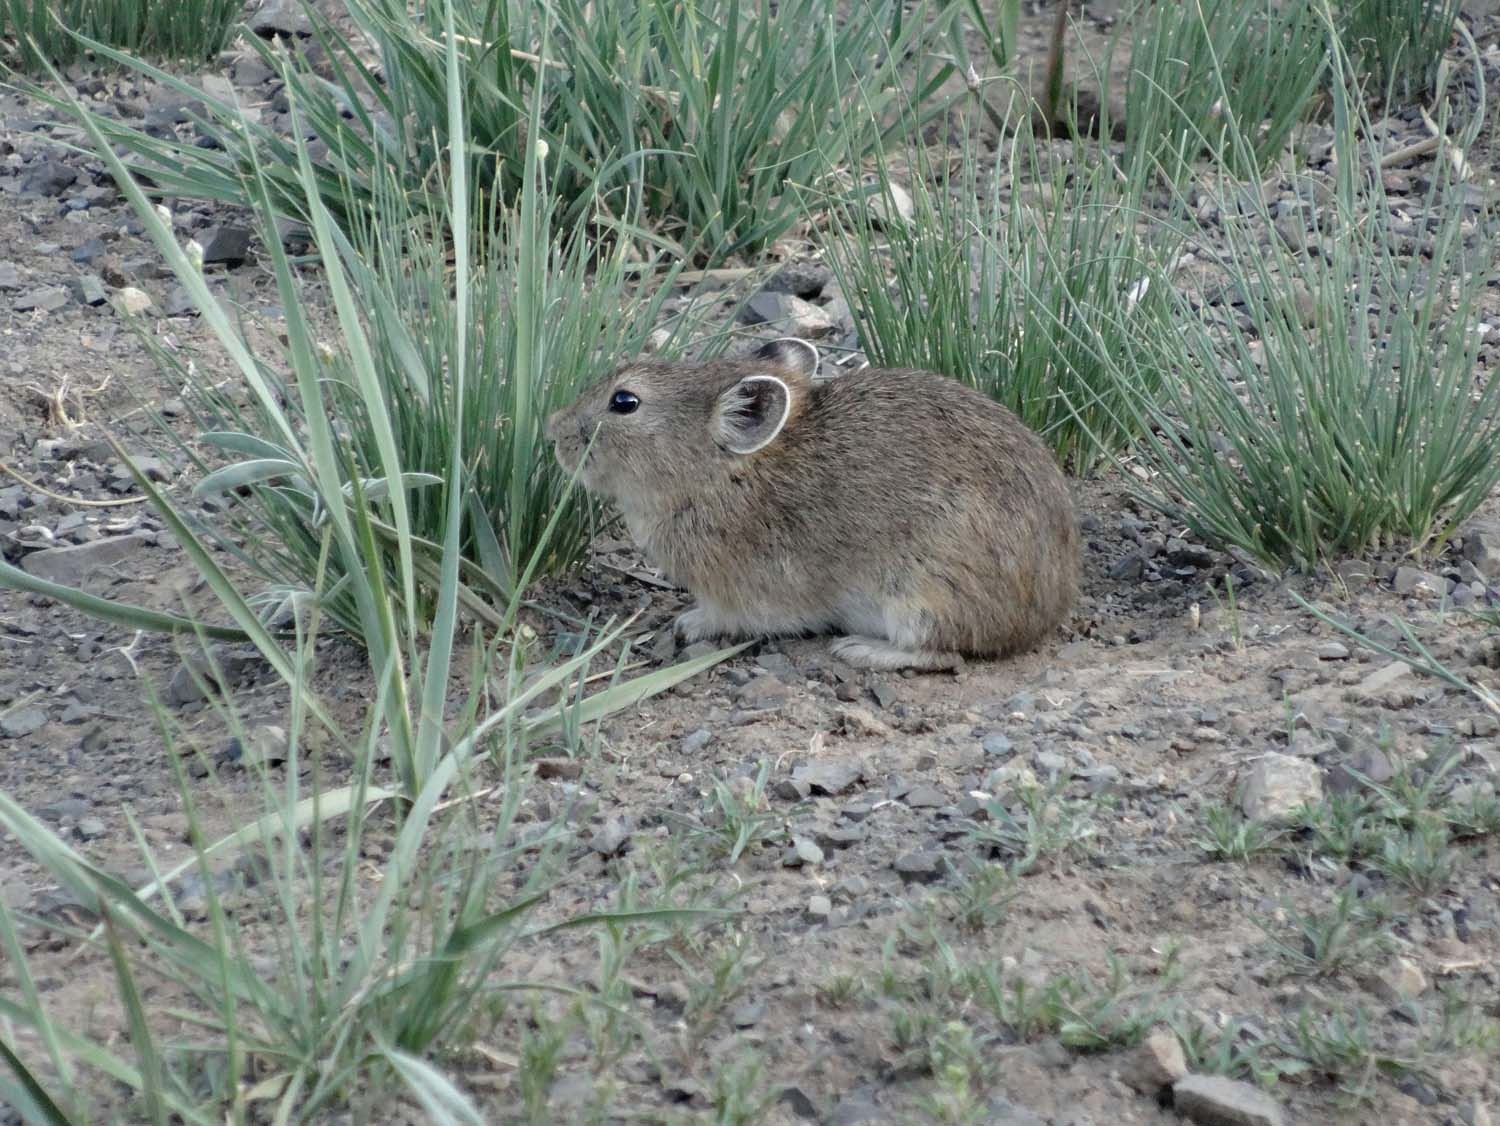 another cute one, looks like a hamster but they are called pikas